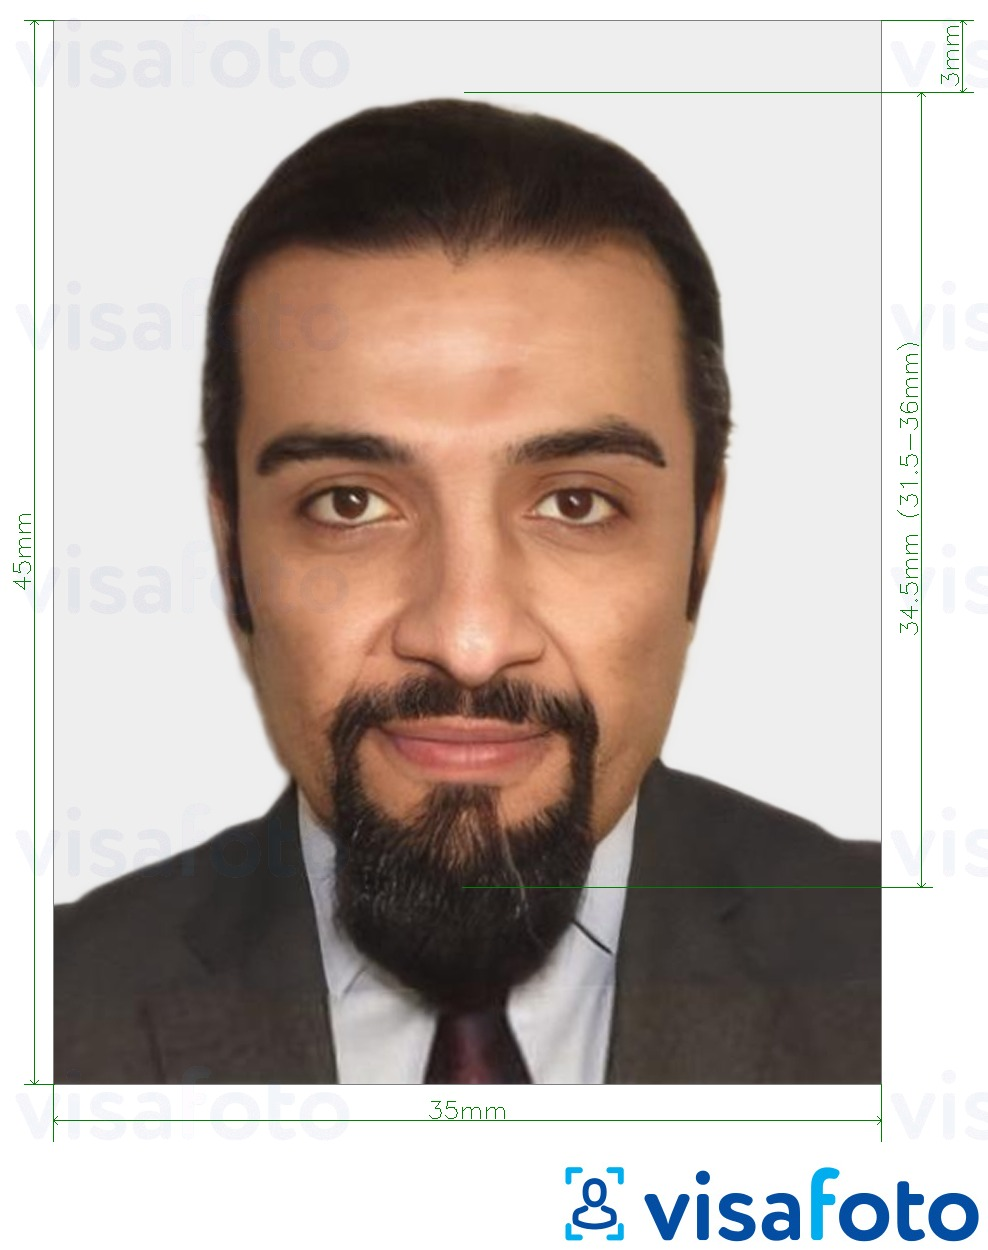 Example of photo for Mauritania ID card 35x45 mm (3.5x4.5 cm) with exact size specification